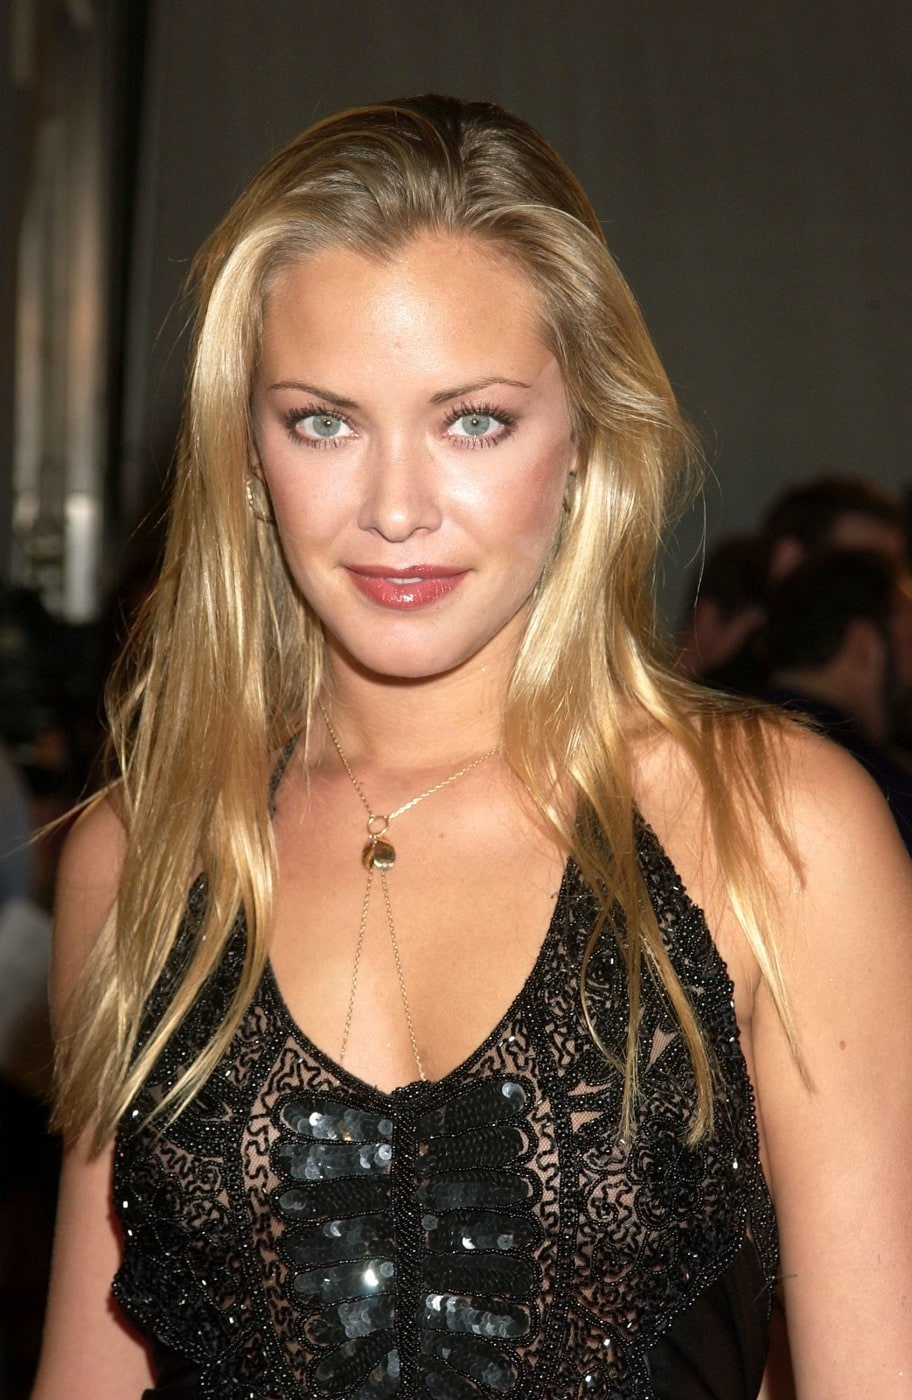 Kristanna Loken naked (66 fotos) Gallery, YouTube, cleavage